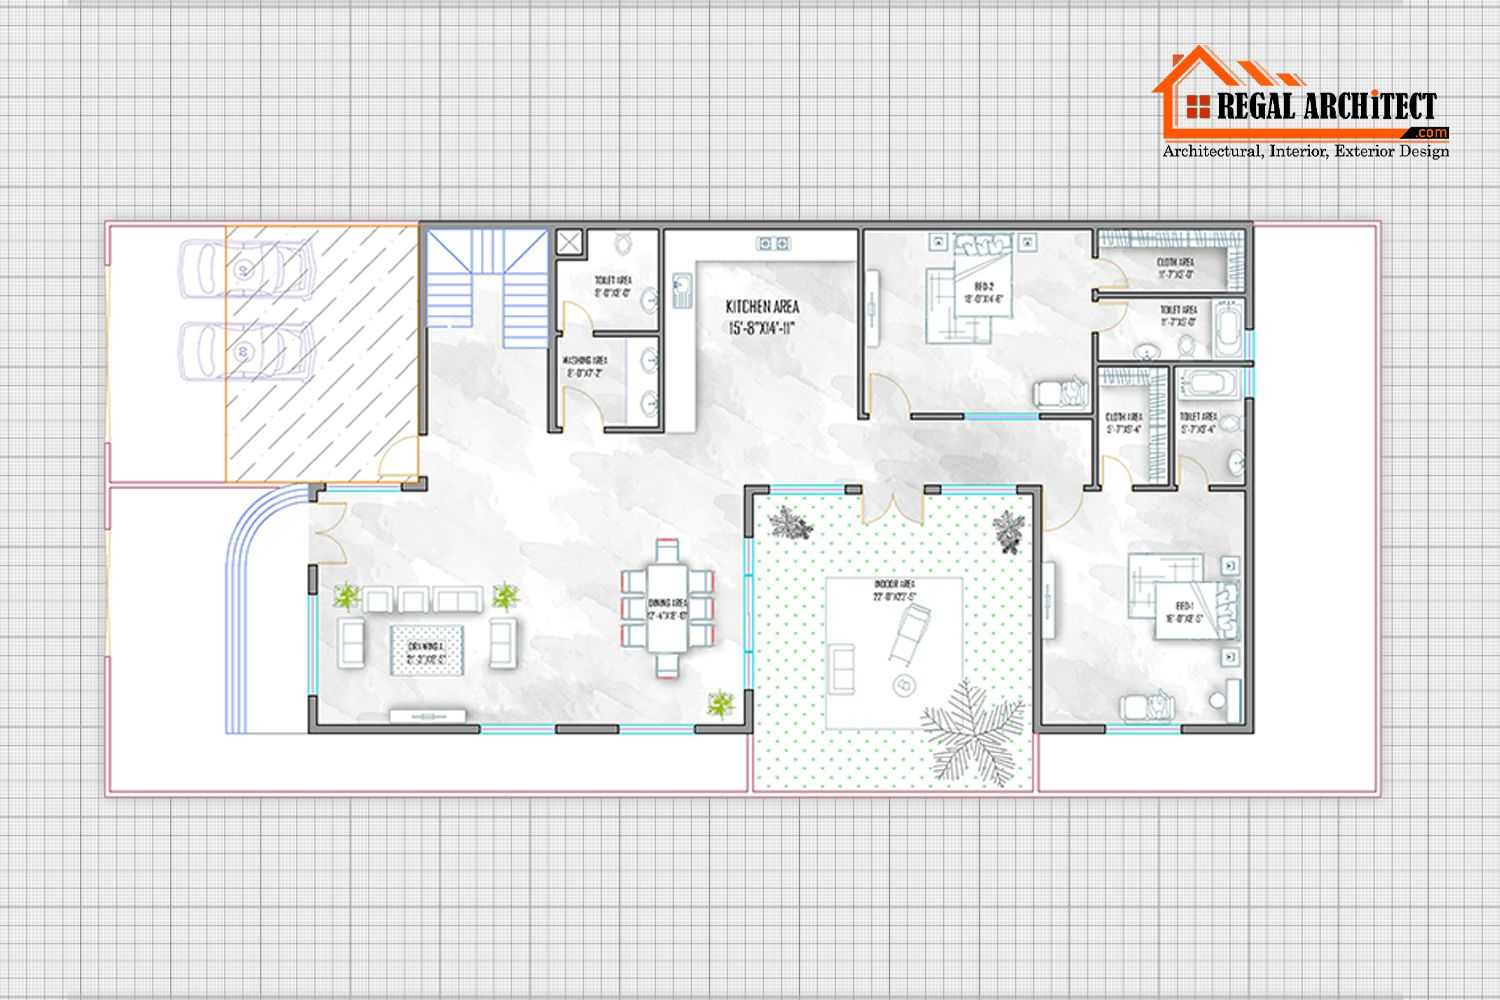 Design Architectural Floor Plan Drawing Sketch In Autocad Very Fast Architectural Floor Plans Floor Plans Floor Plan Creator